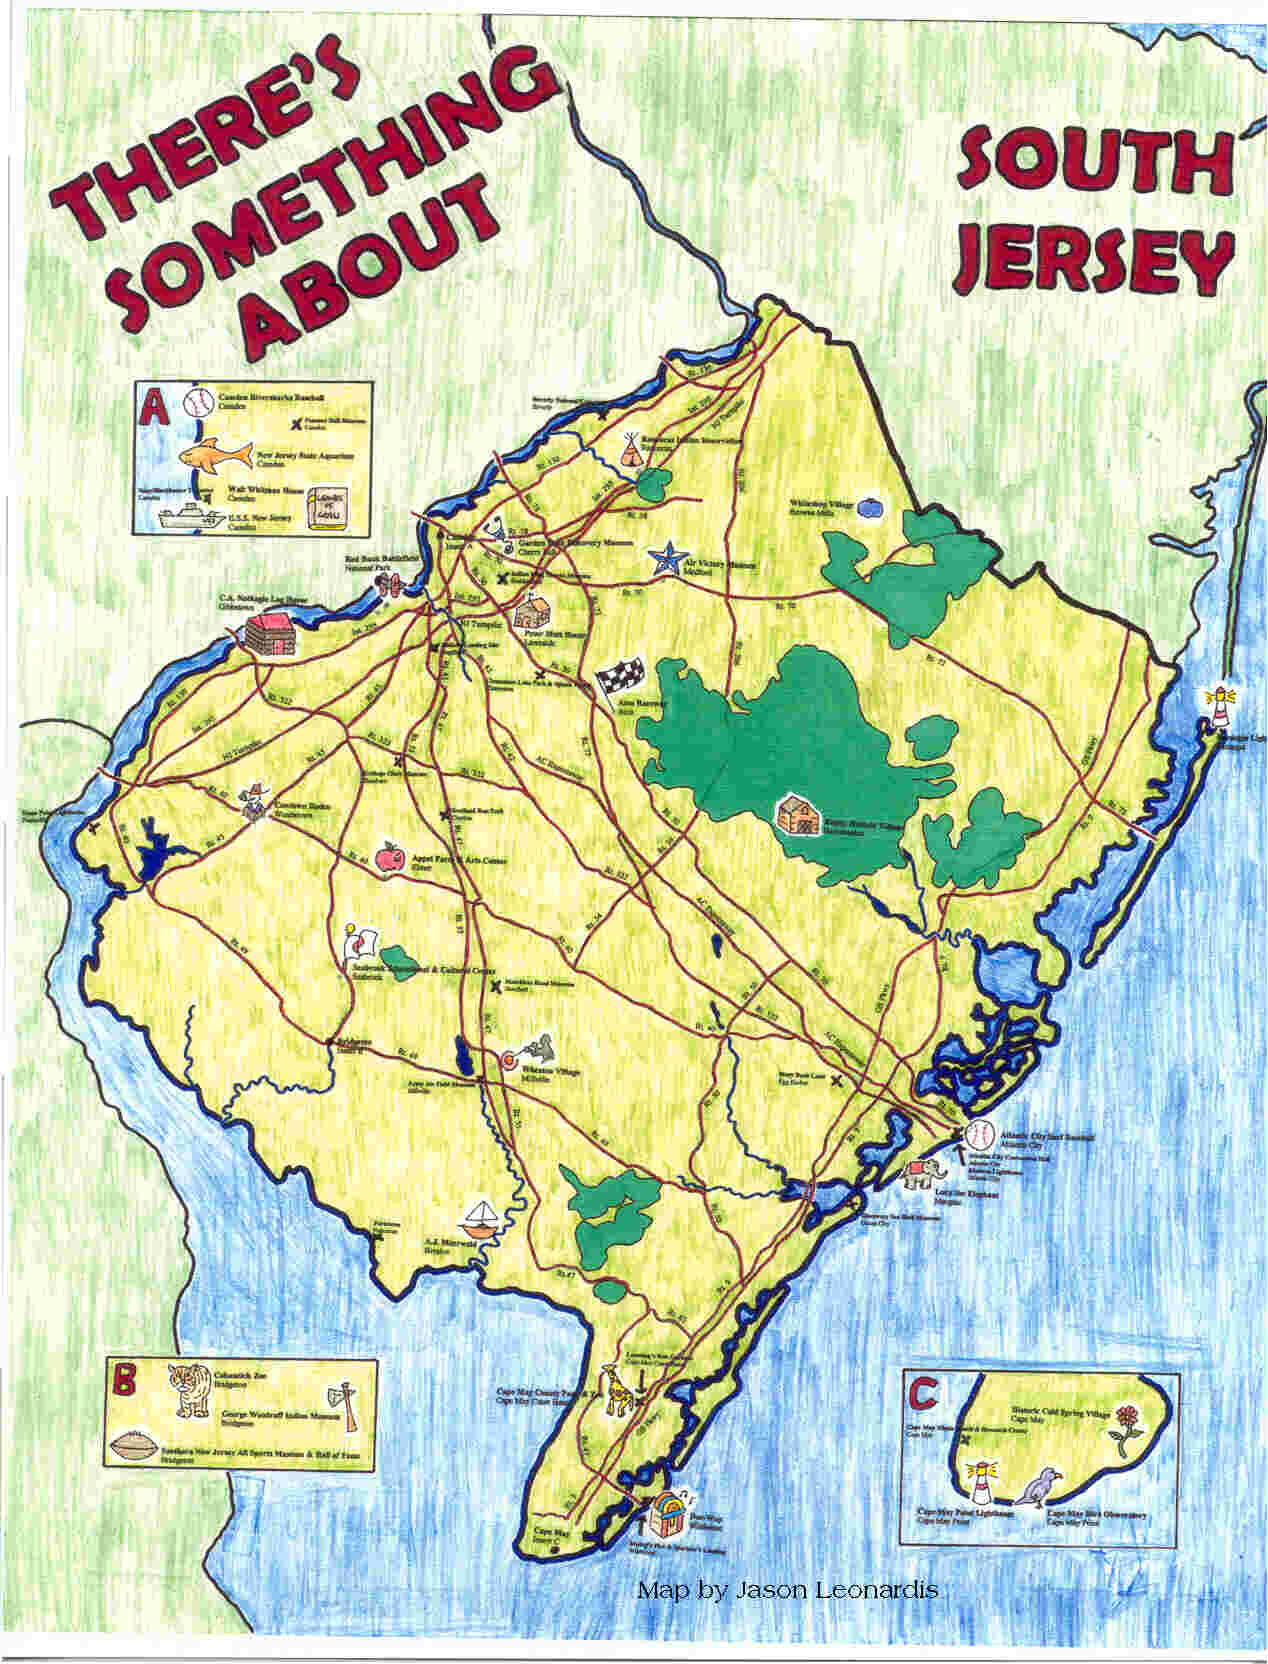 Sprawl and Smart Growth in Southern New Jersey on map of northern nj showing all towns, map of southern jersey, map of new brunswick towns, map of gloucester county towns, map showing cities and towns of new jersey, map of southern louisiana towns, map of florida gulf coast towns, map of ventura county towns, map of the jersey shore towns, map of atlantic city nj and surrounding towns, map of buffalo towns, map of bucks county pa towns, map of south dakota towns, burlington county nj map towns, map of delaware county towns, map of western maryland towns, map of central new jersey towns, map of camden county nj towns, map of sussex county nj towns, map of north jersey,